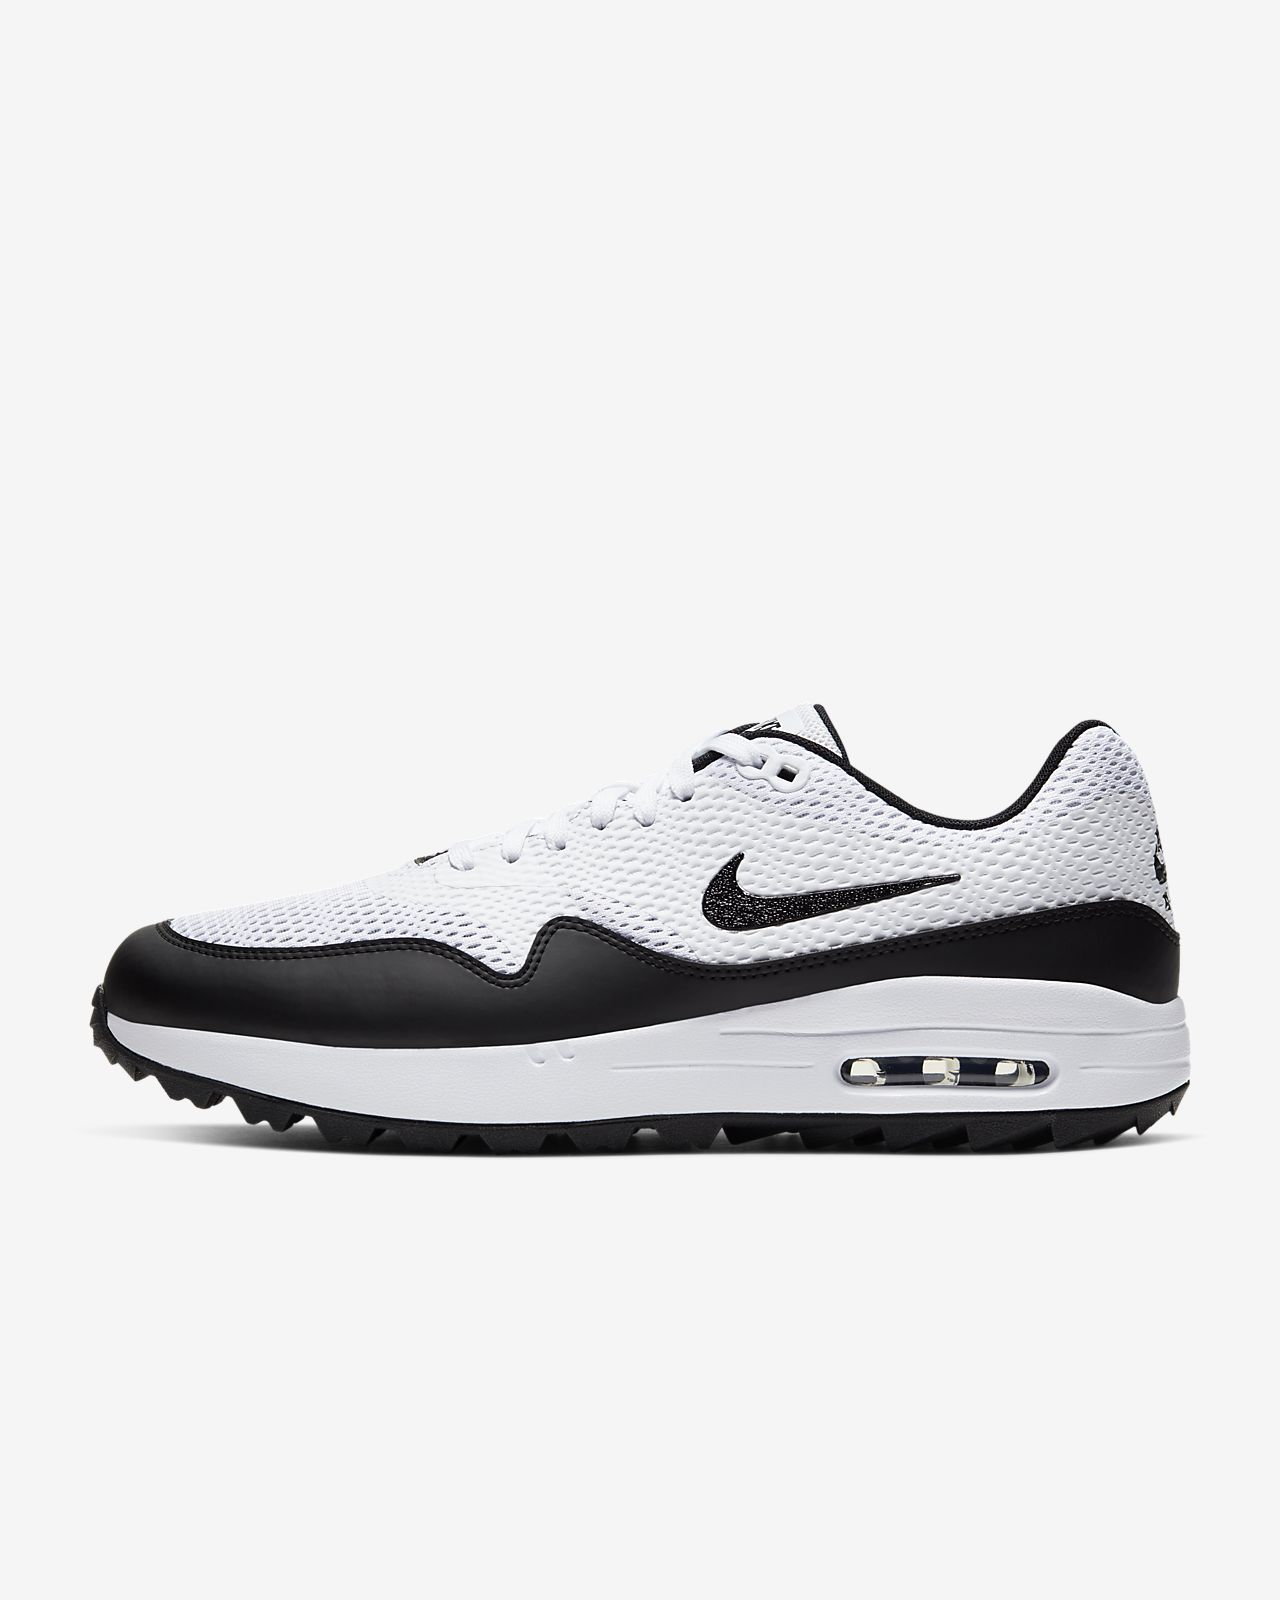 Nike Air Max 1 G Men's Golf Shoe